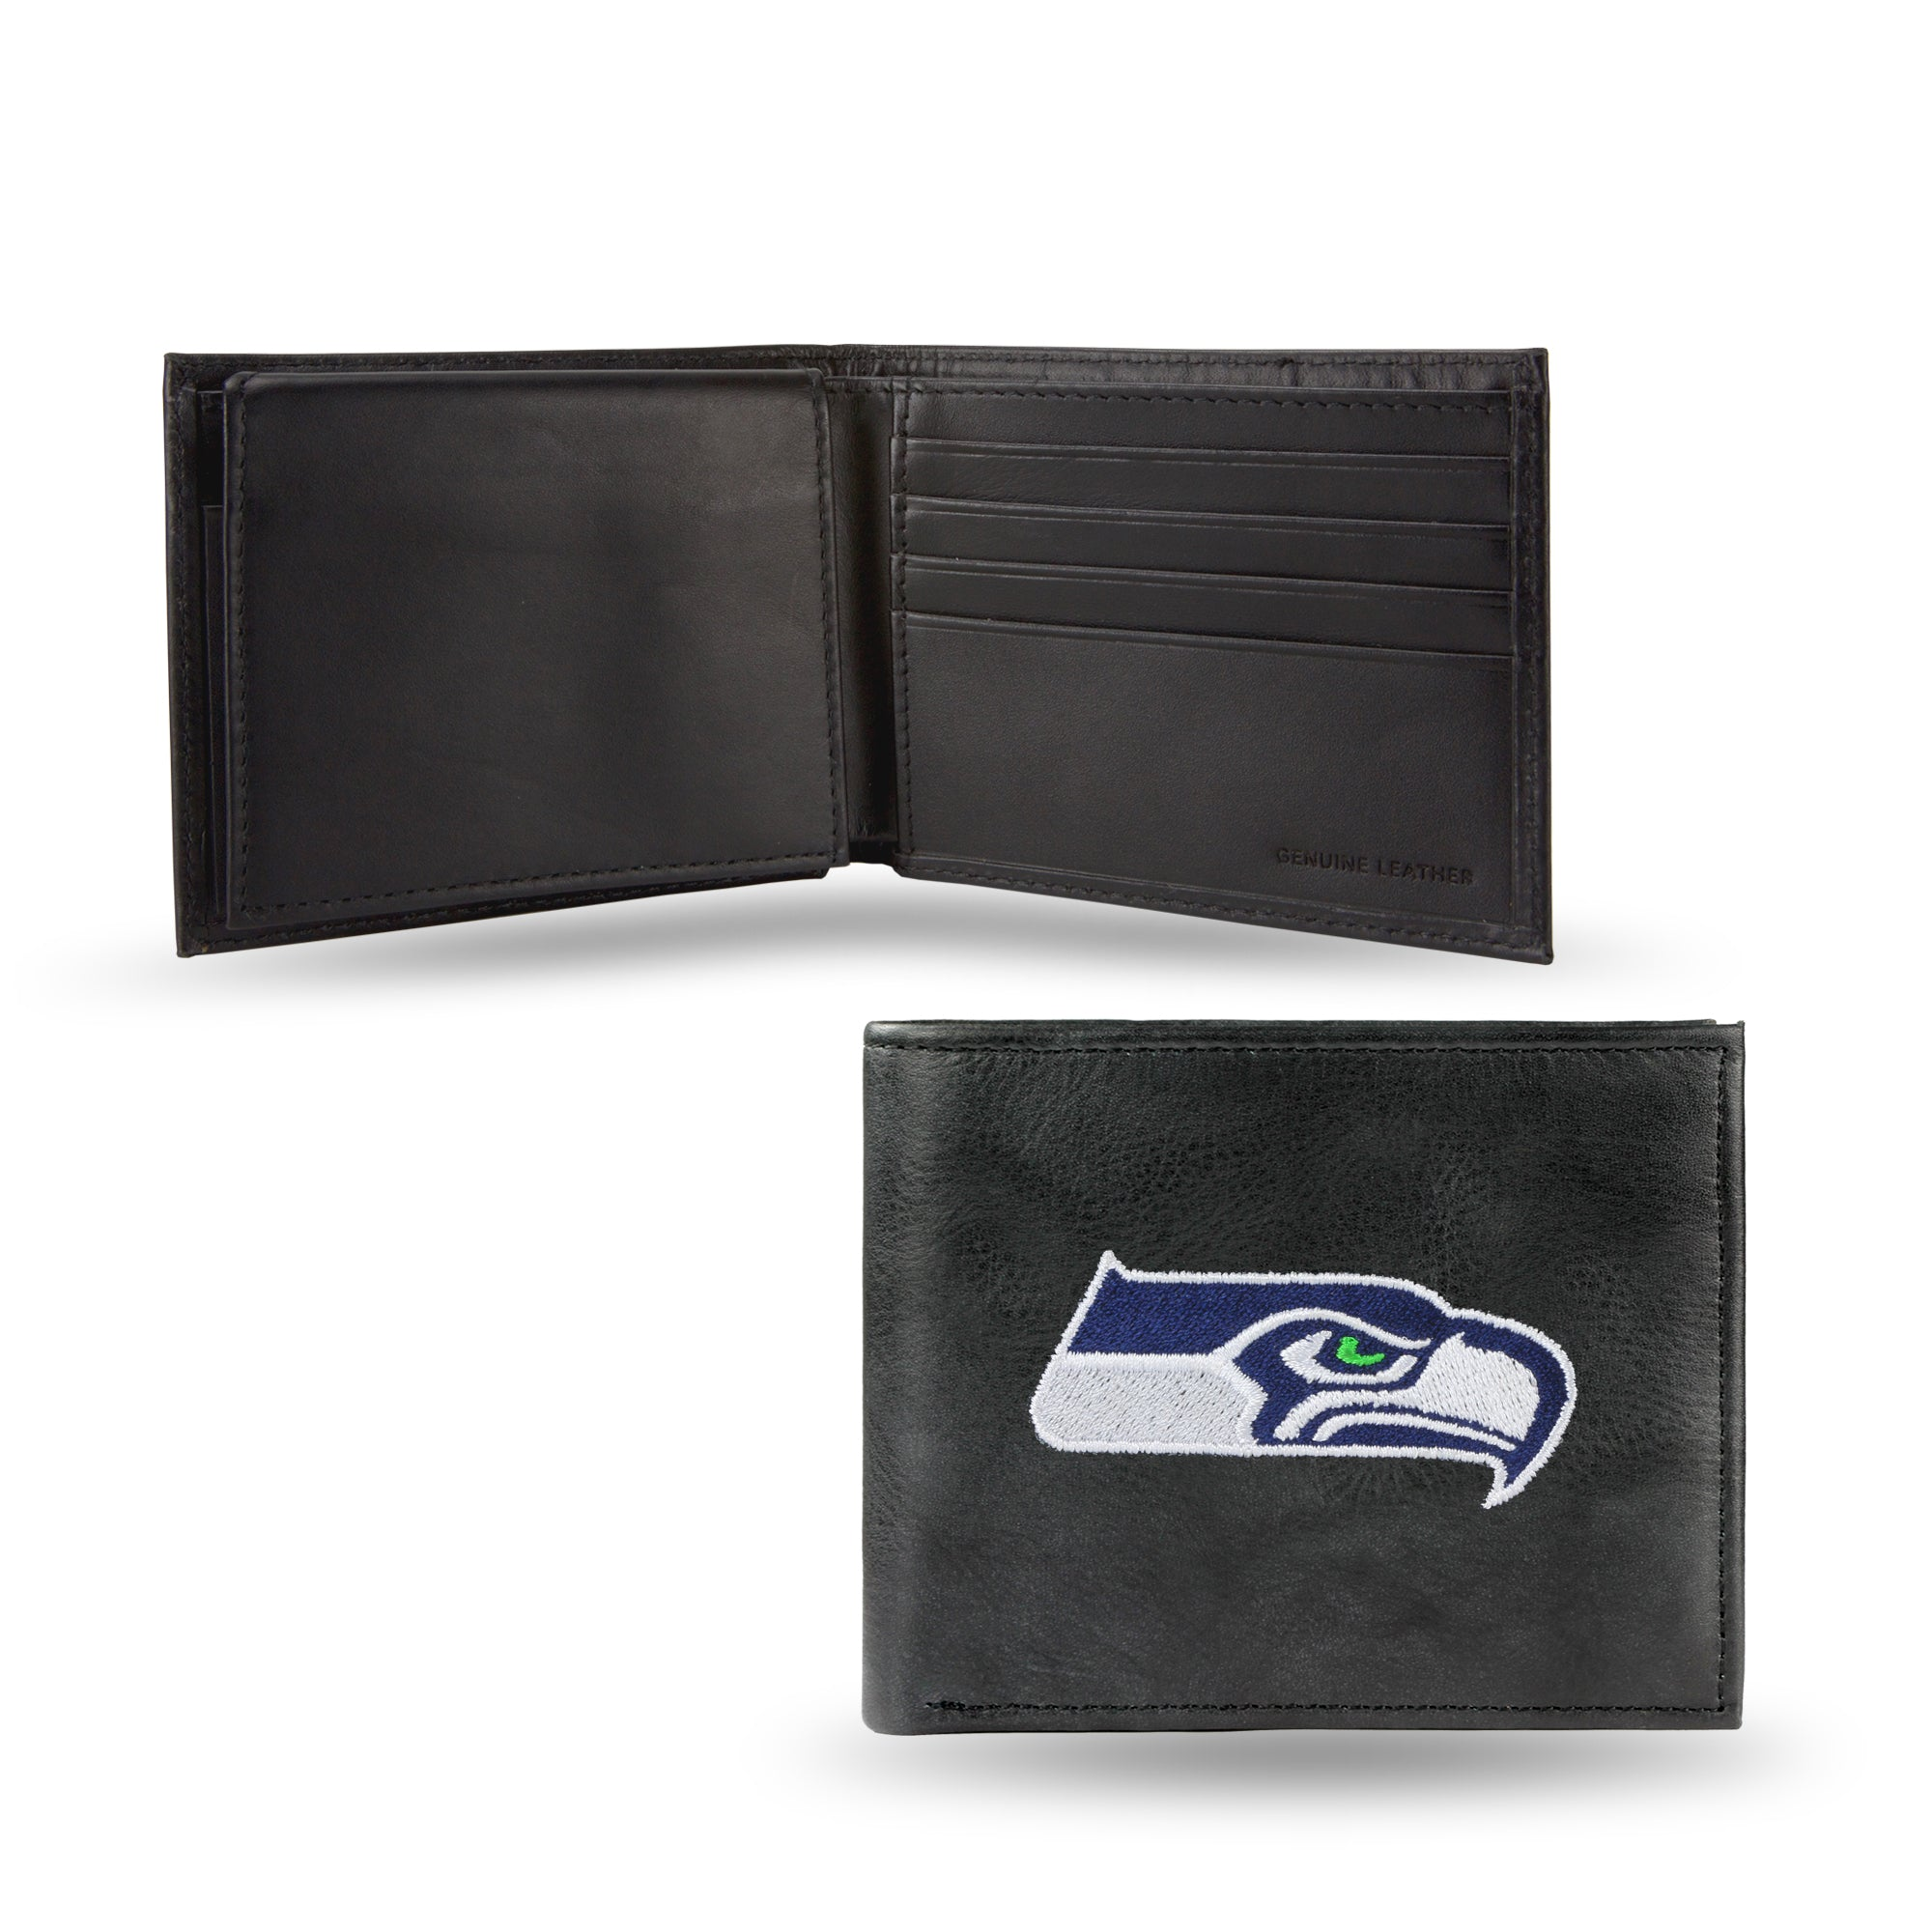 NFL Seattle Seahawks Embroidered Billfold / Wallet